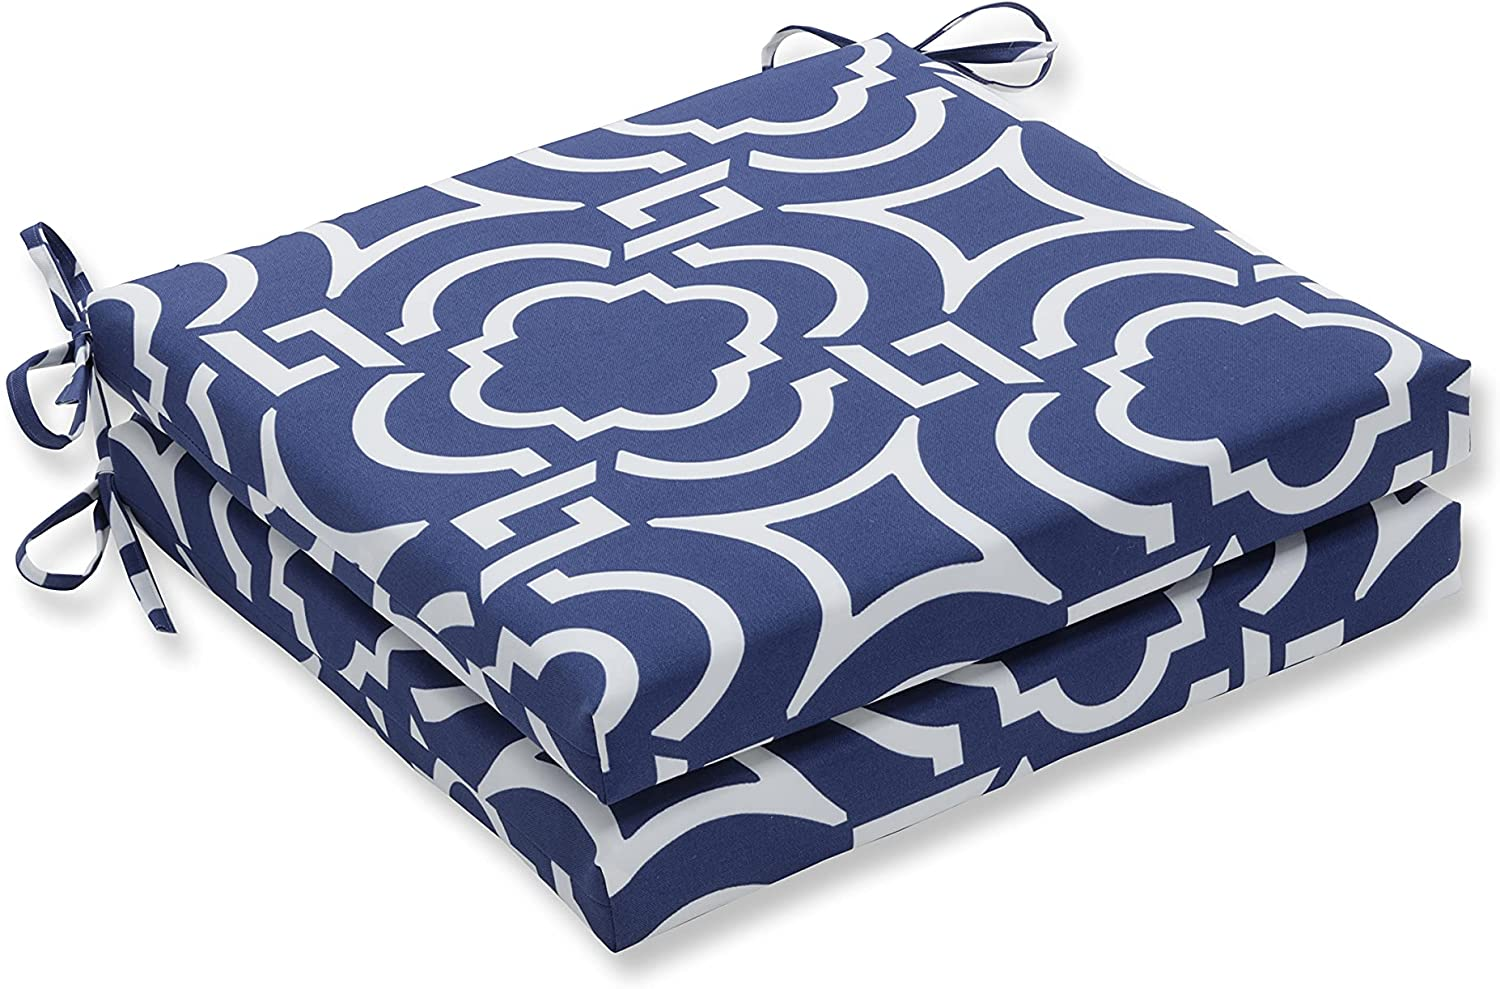 Free Shipping New Pillow Perfect Outdoor Indoor Carmody Corner Cu Square Seat Year-end gift Navy